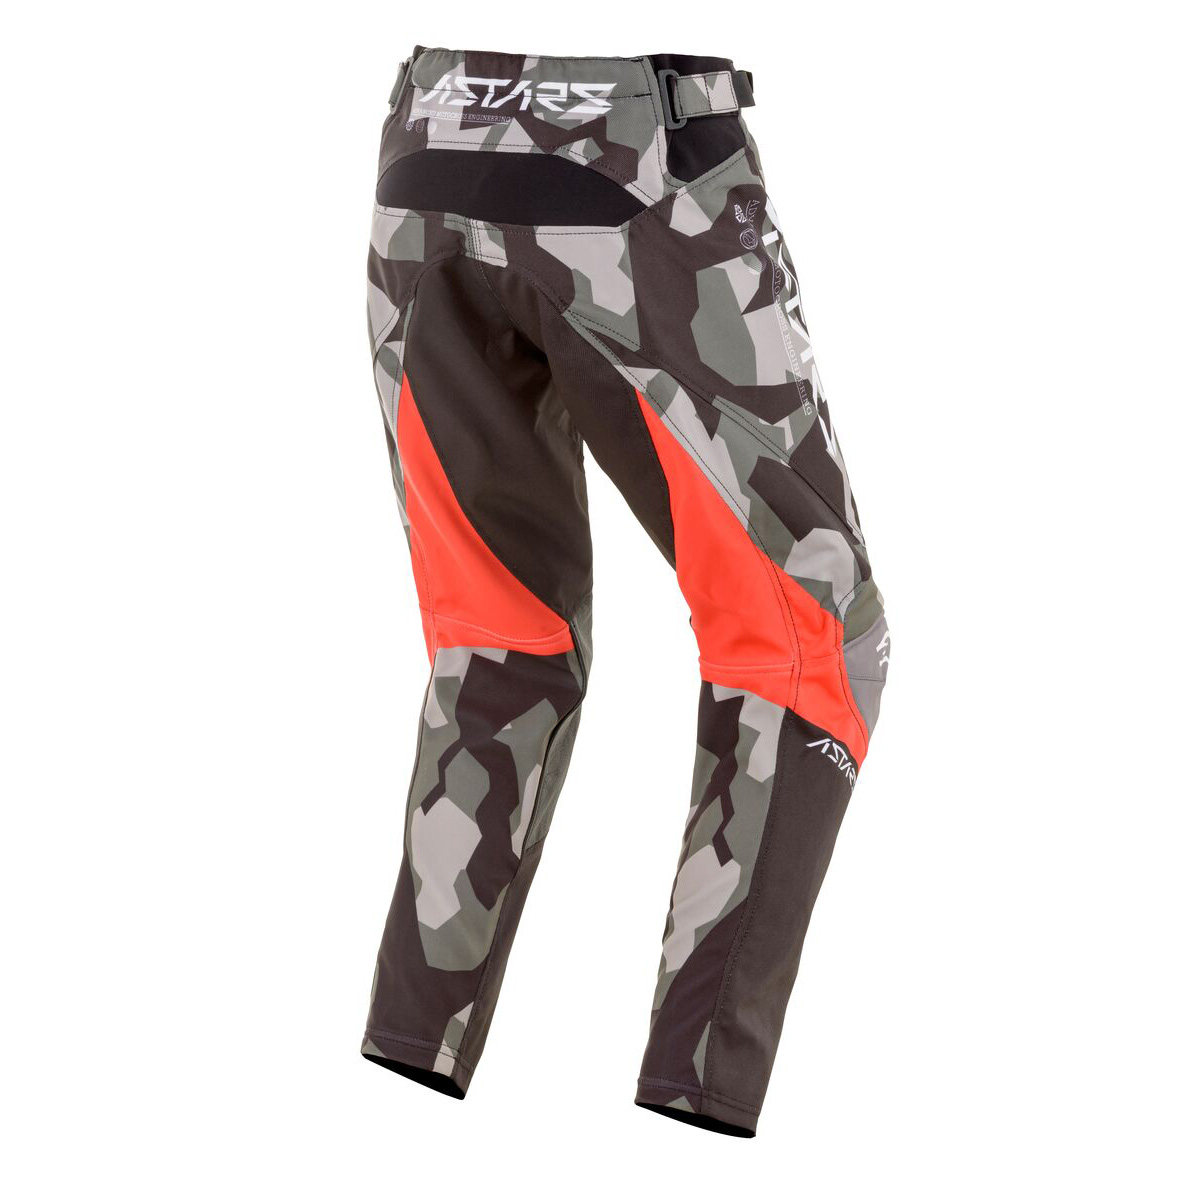 3771920 1367 - 3741920 6713 2020 Alpinestars Youth Racer Limited Edition Gear Kit Black Red Fluo Green Camo Kinder Kleding Equipement Motocross Enfant